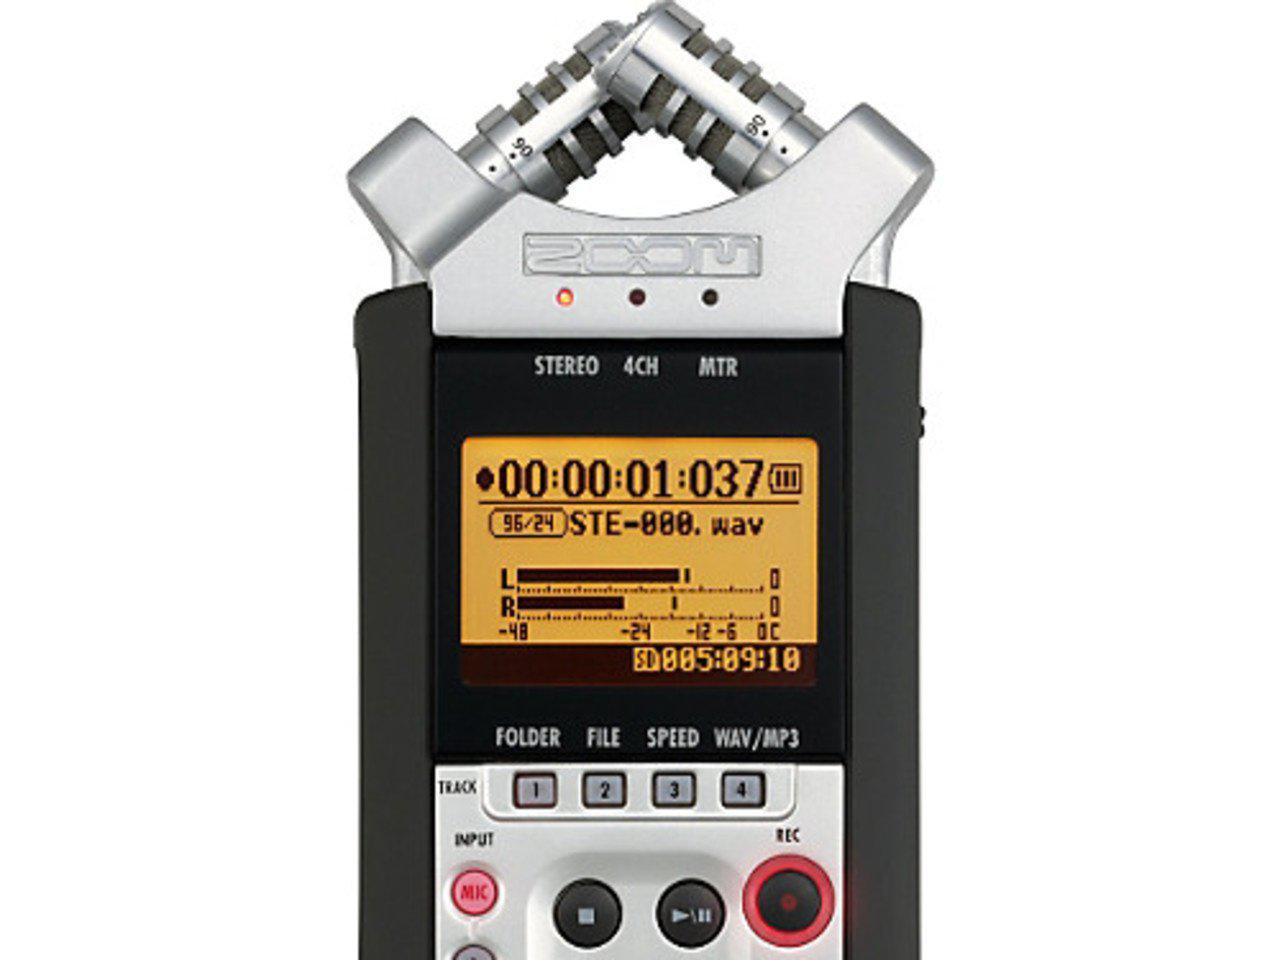 Zoom H4N - Available with the LensLockers Equipment Access Program (LEAP)